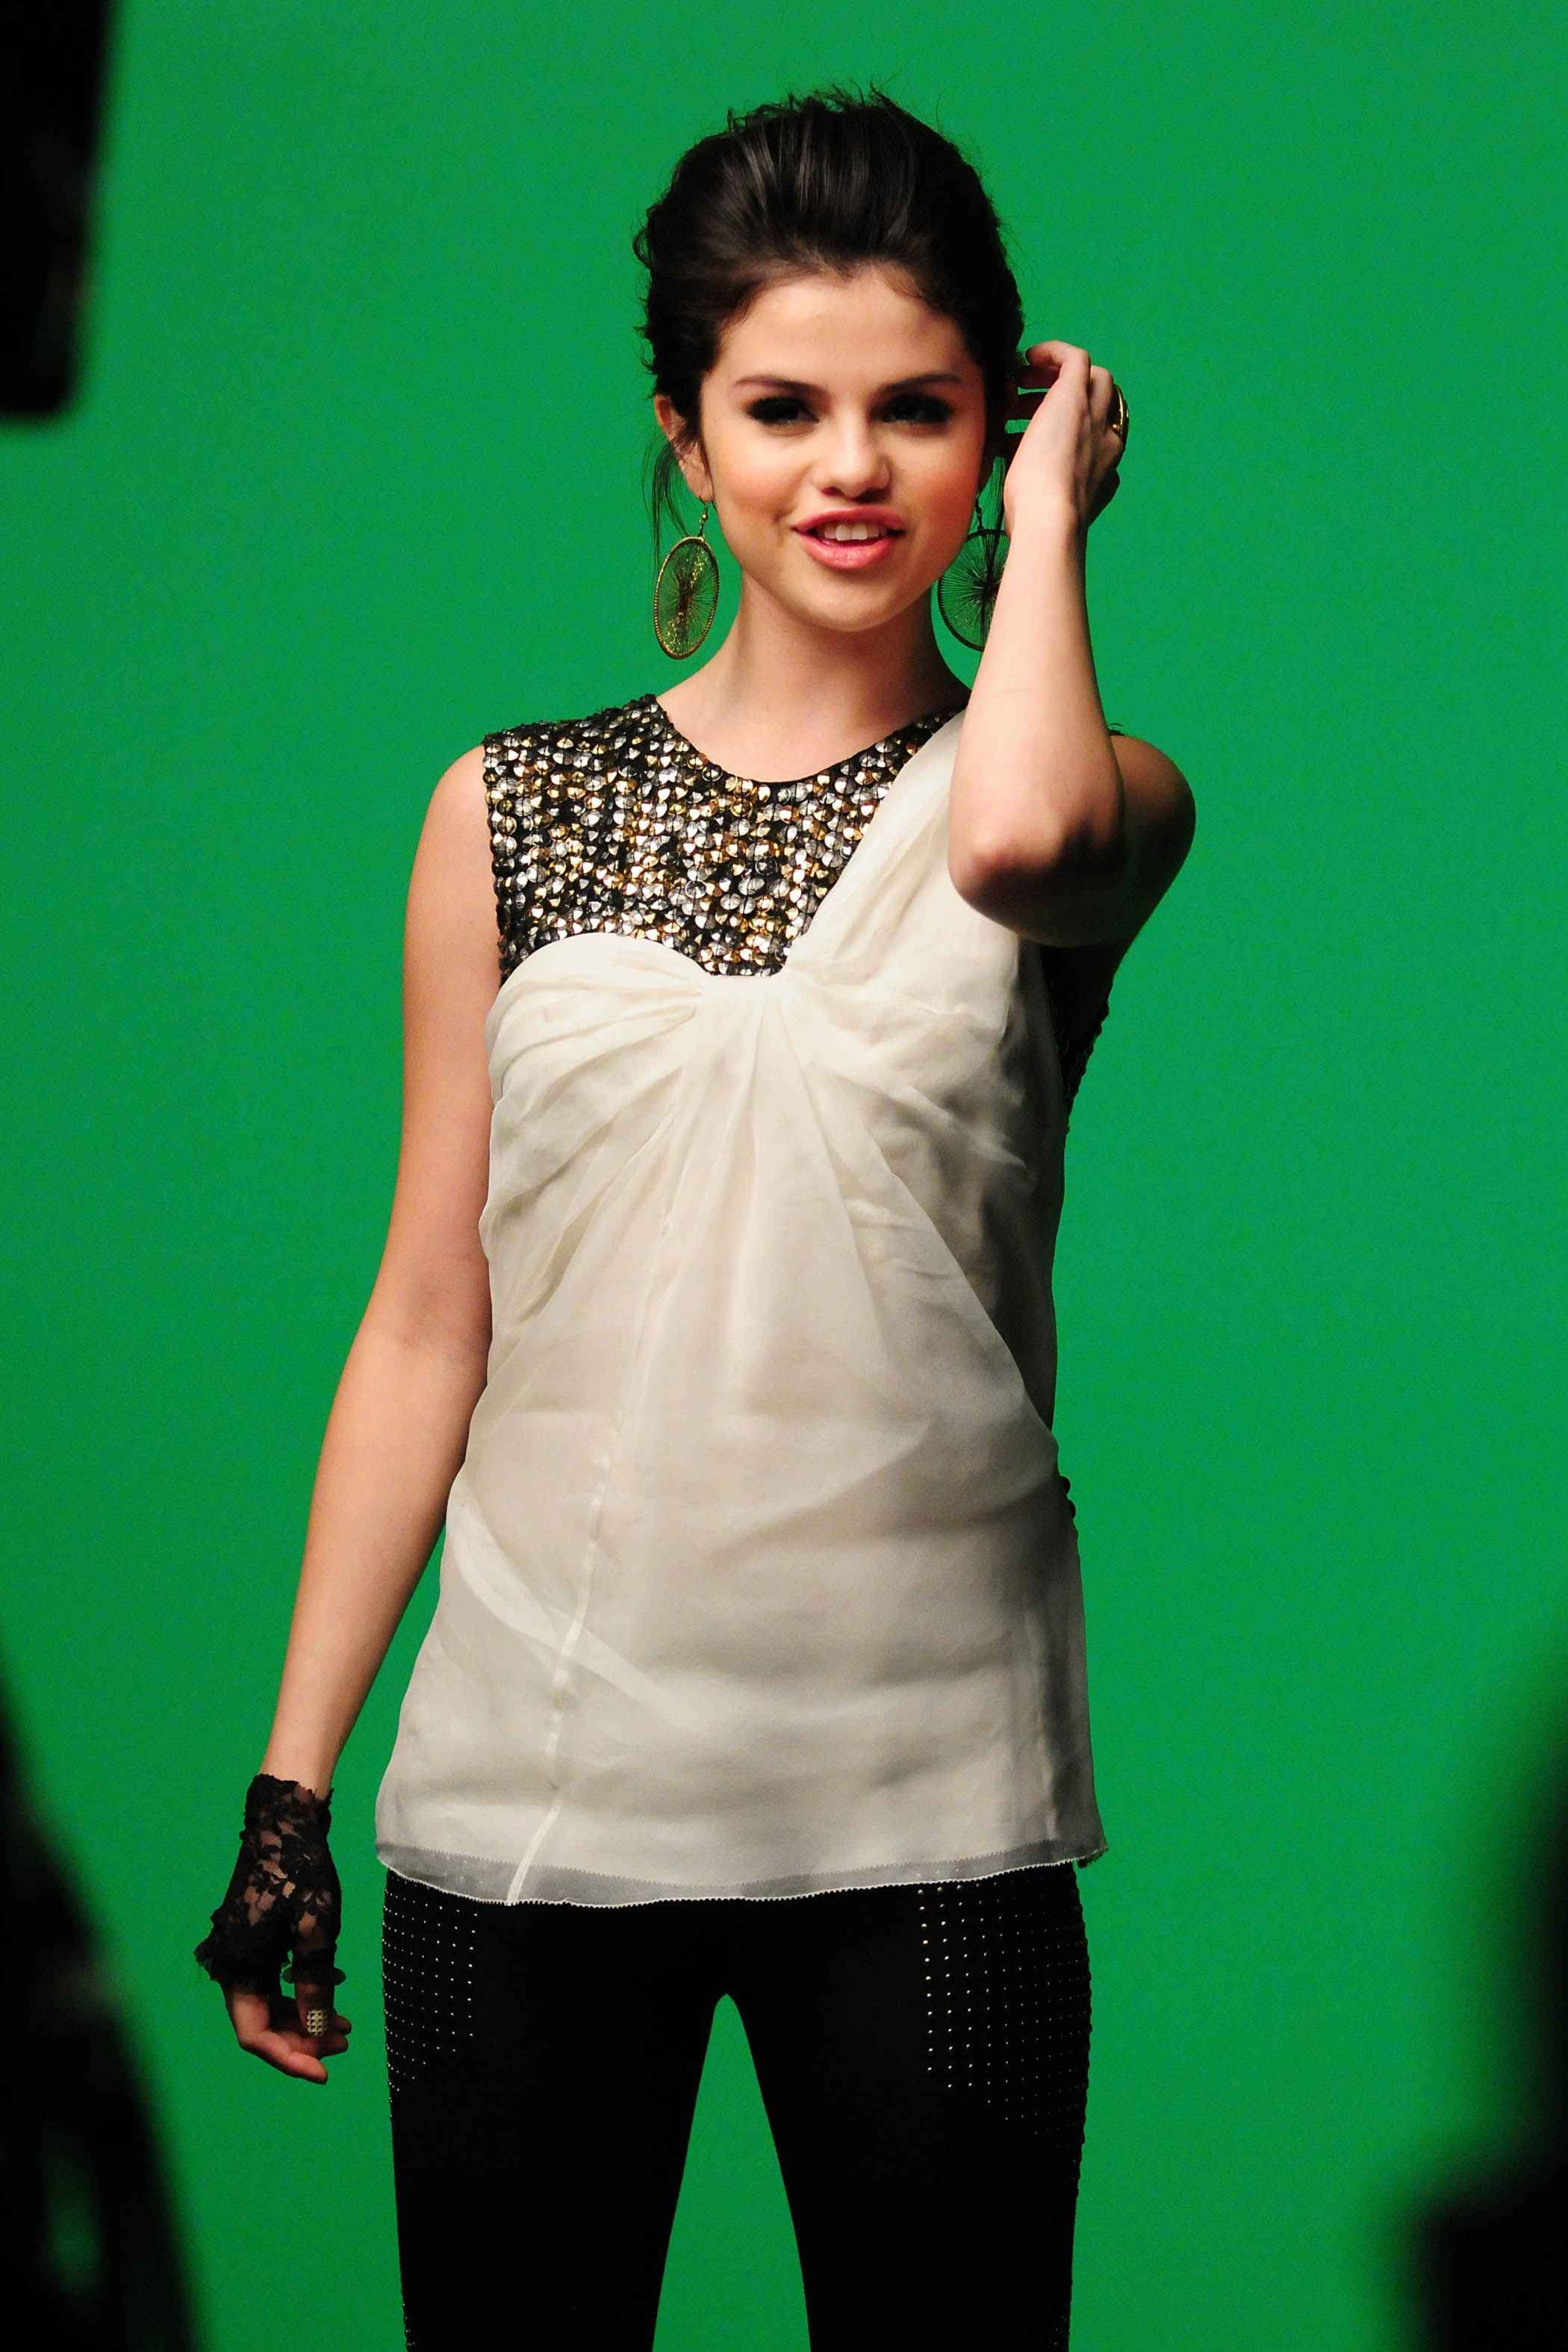 Selena Gomez (Naturally Music Video) | Fashion | Pinterest | Selena ...